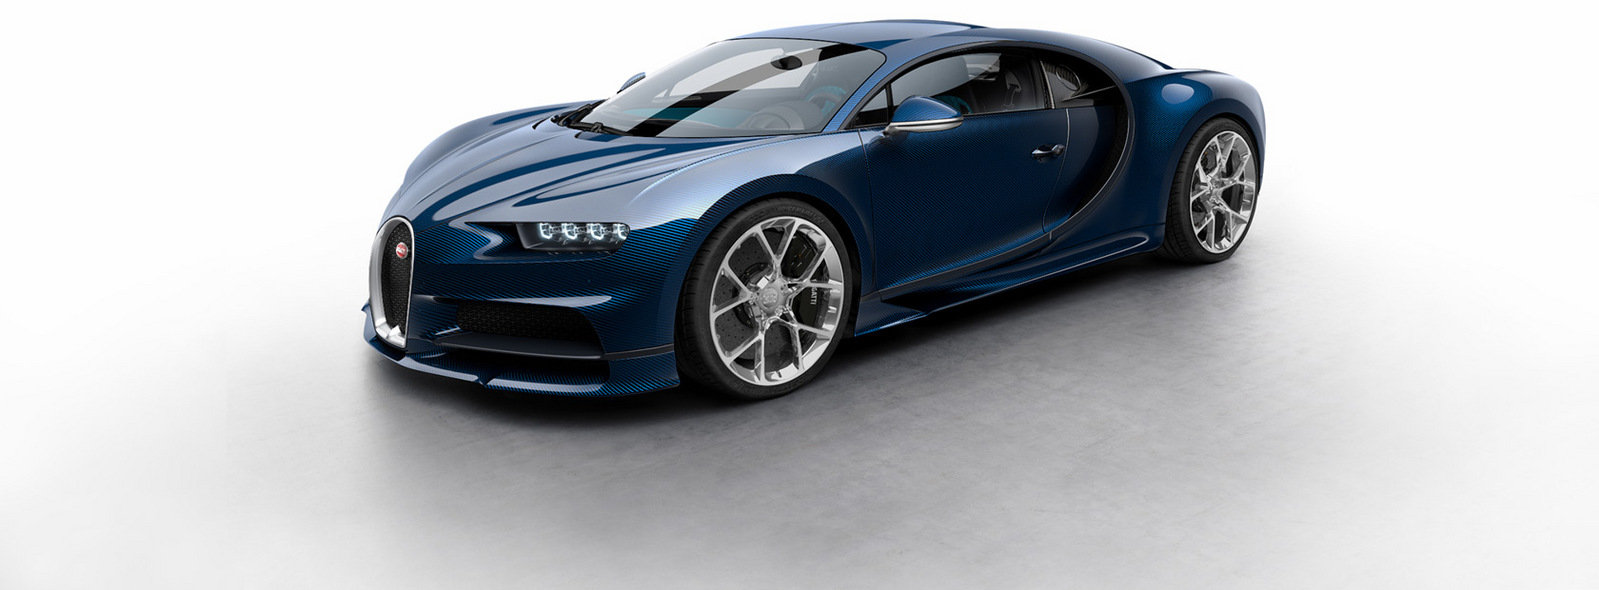 2018 bugatti chiron picture 668878 car review top speed. Black Bedroom Furniture Sets. Home Design Ideas